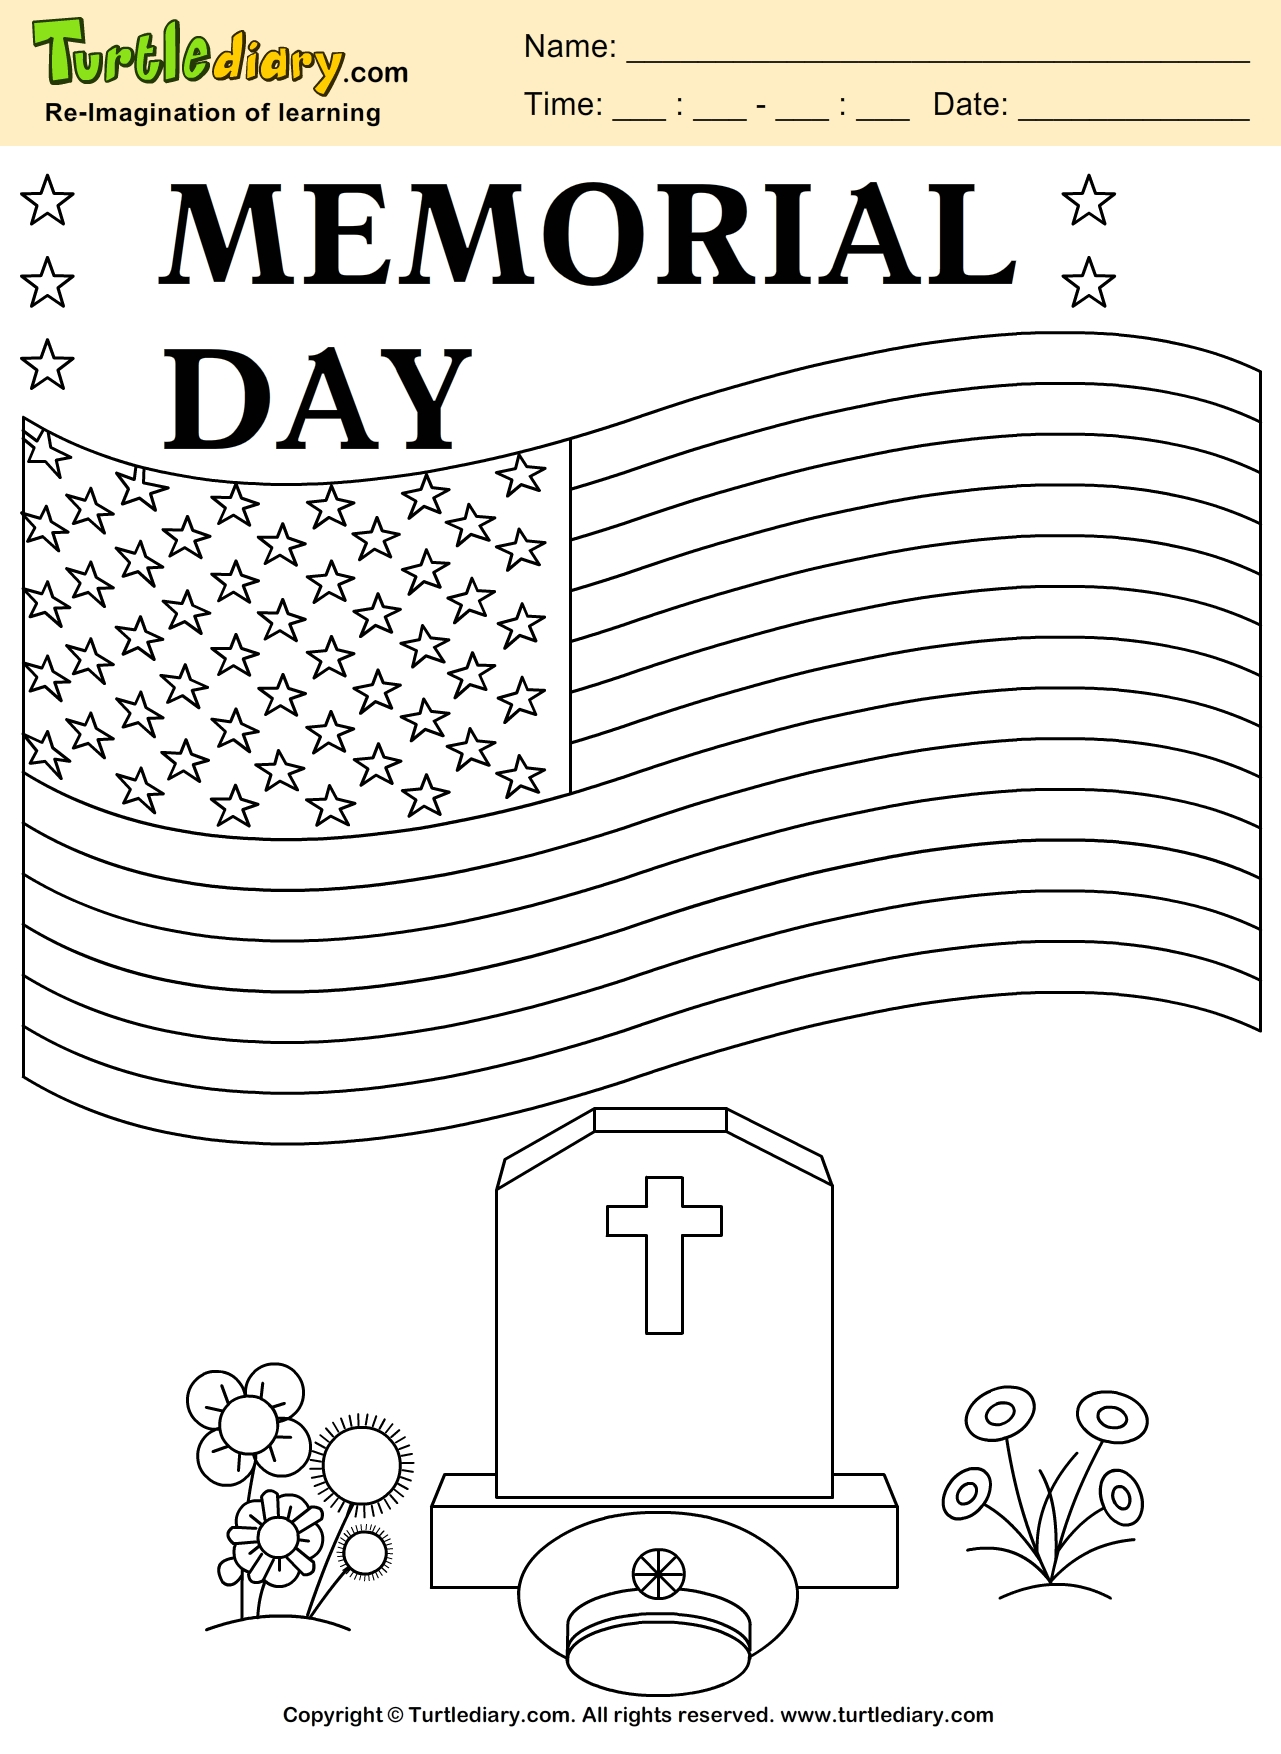 memorial day coloring pages - memorial day